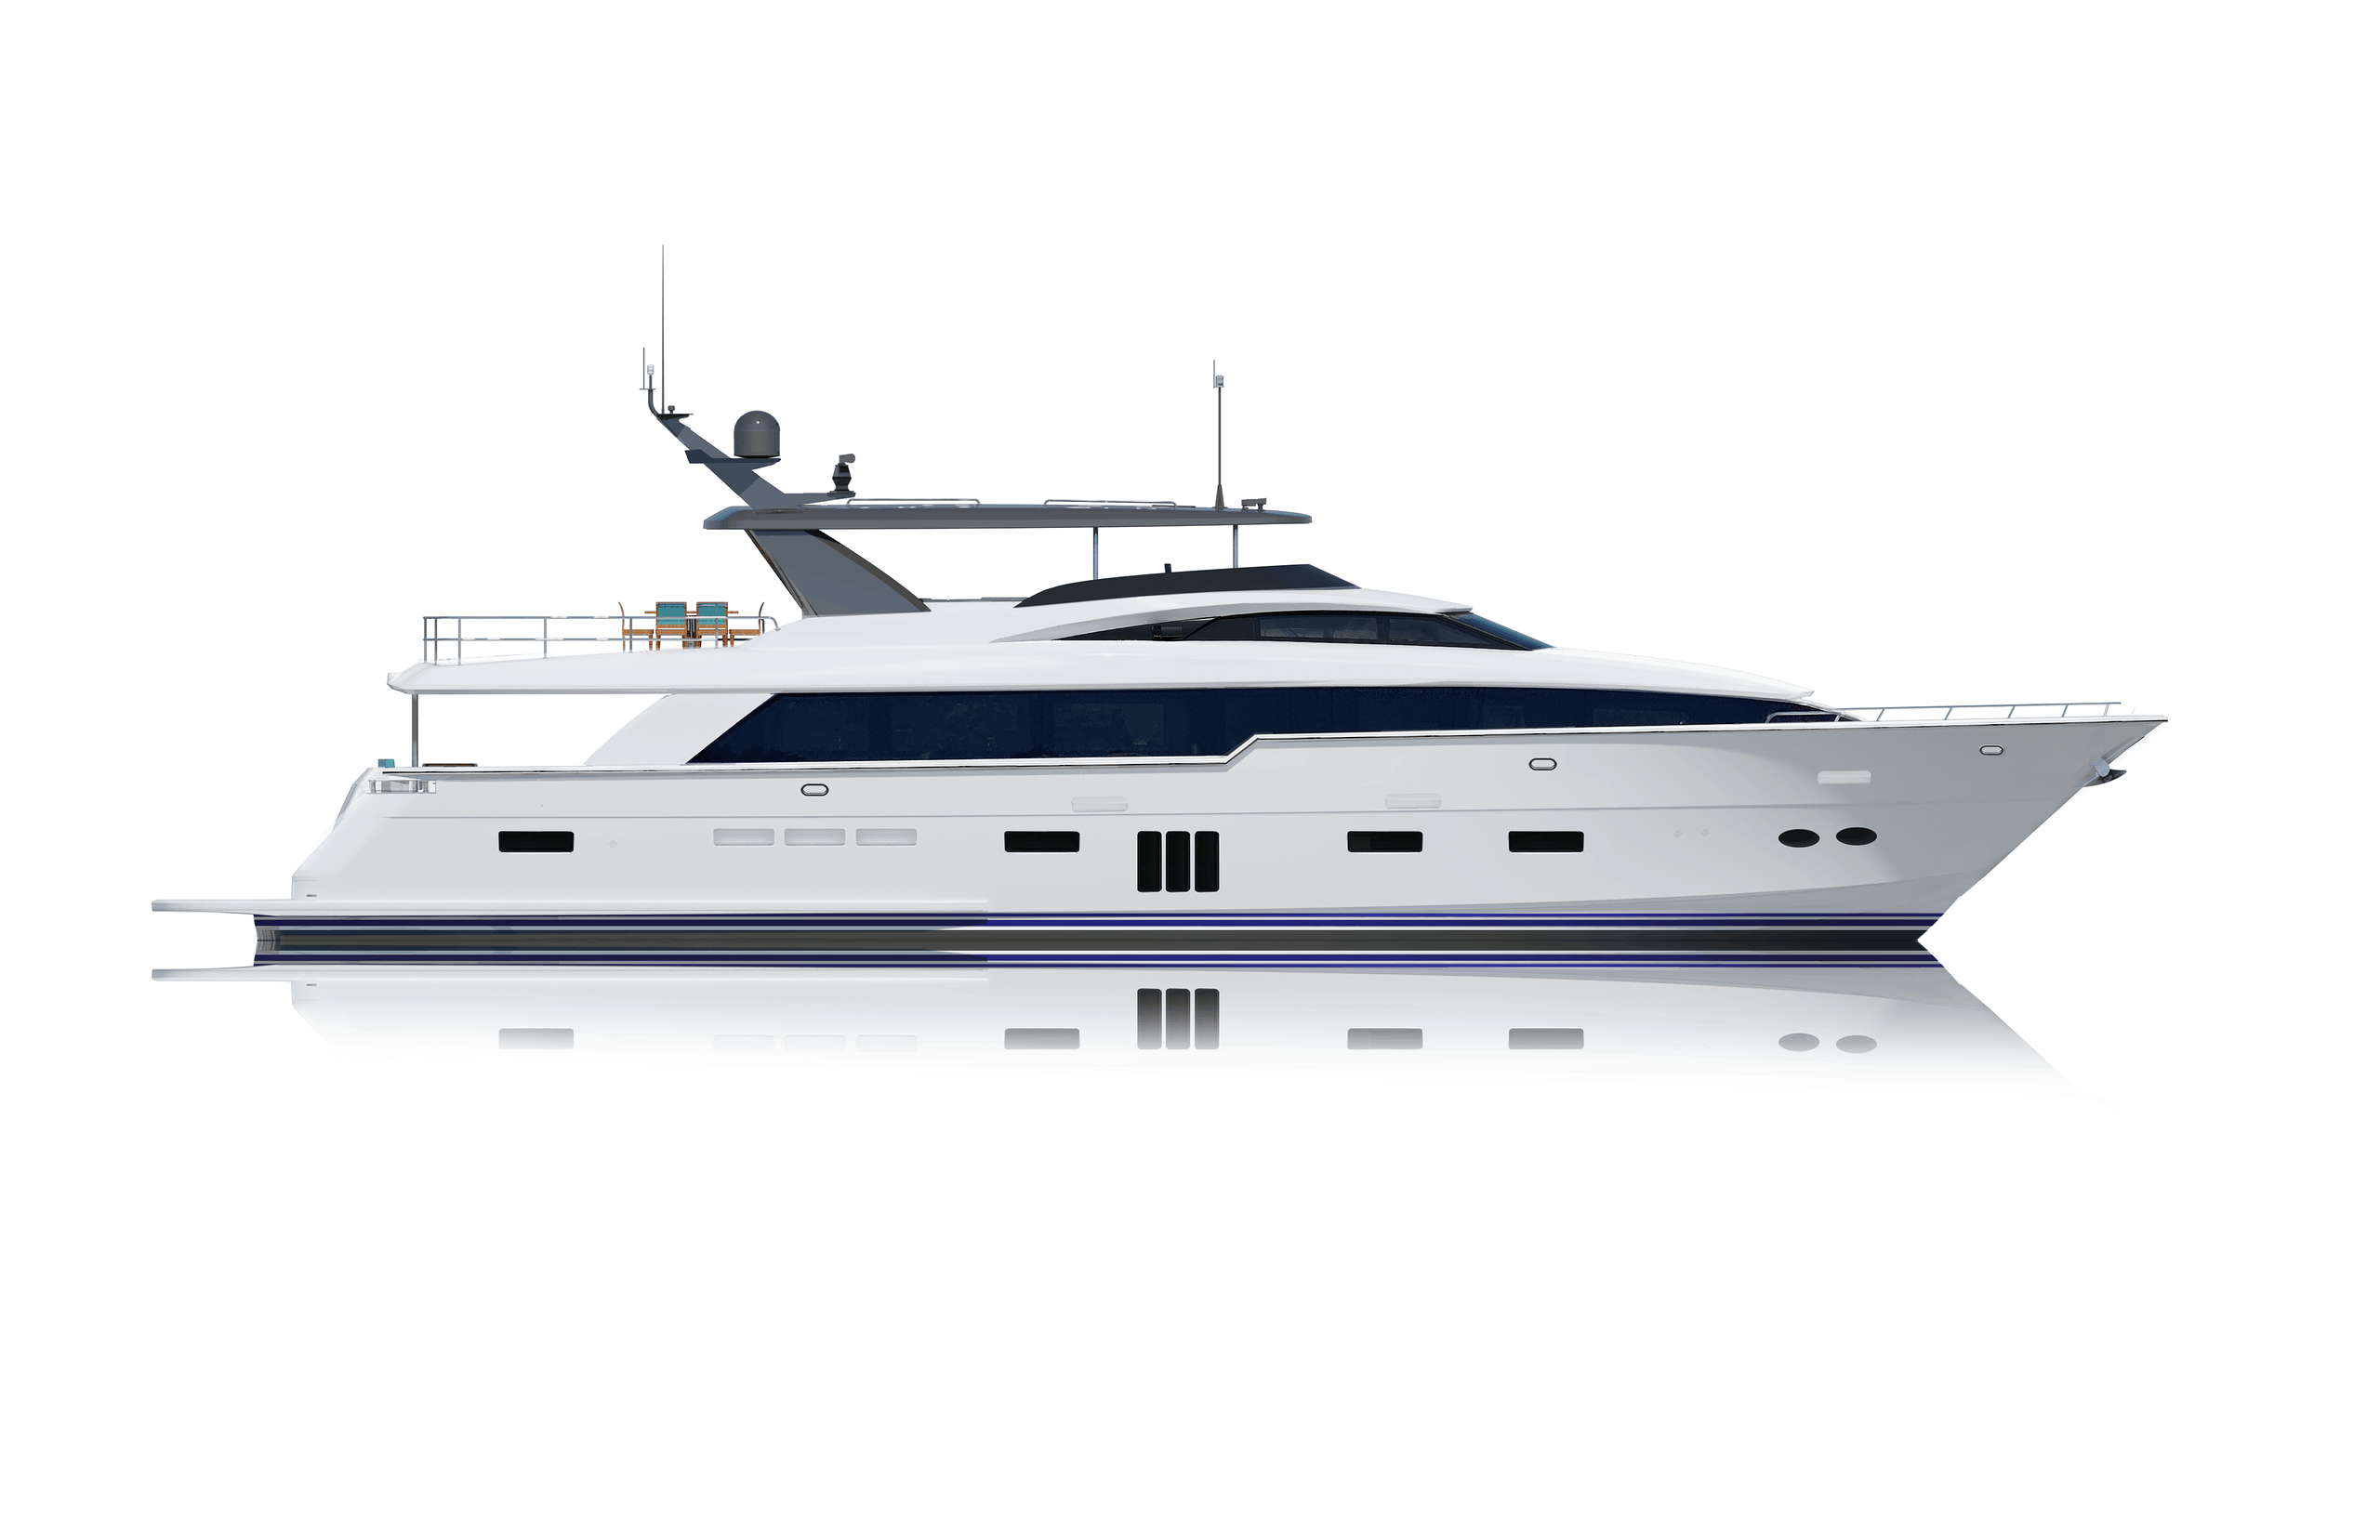 Hatteras 105 Raised Pilothouse Starboard Side Rendering